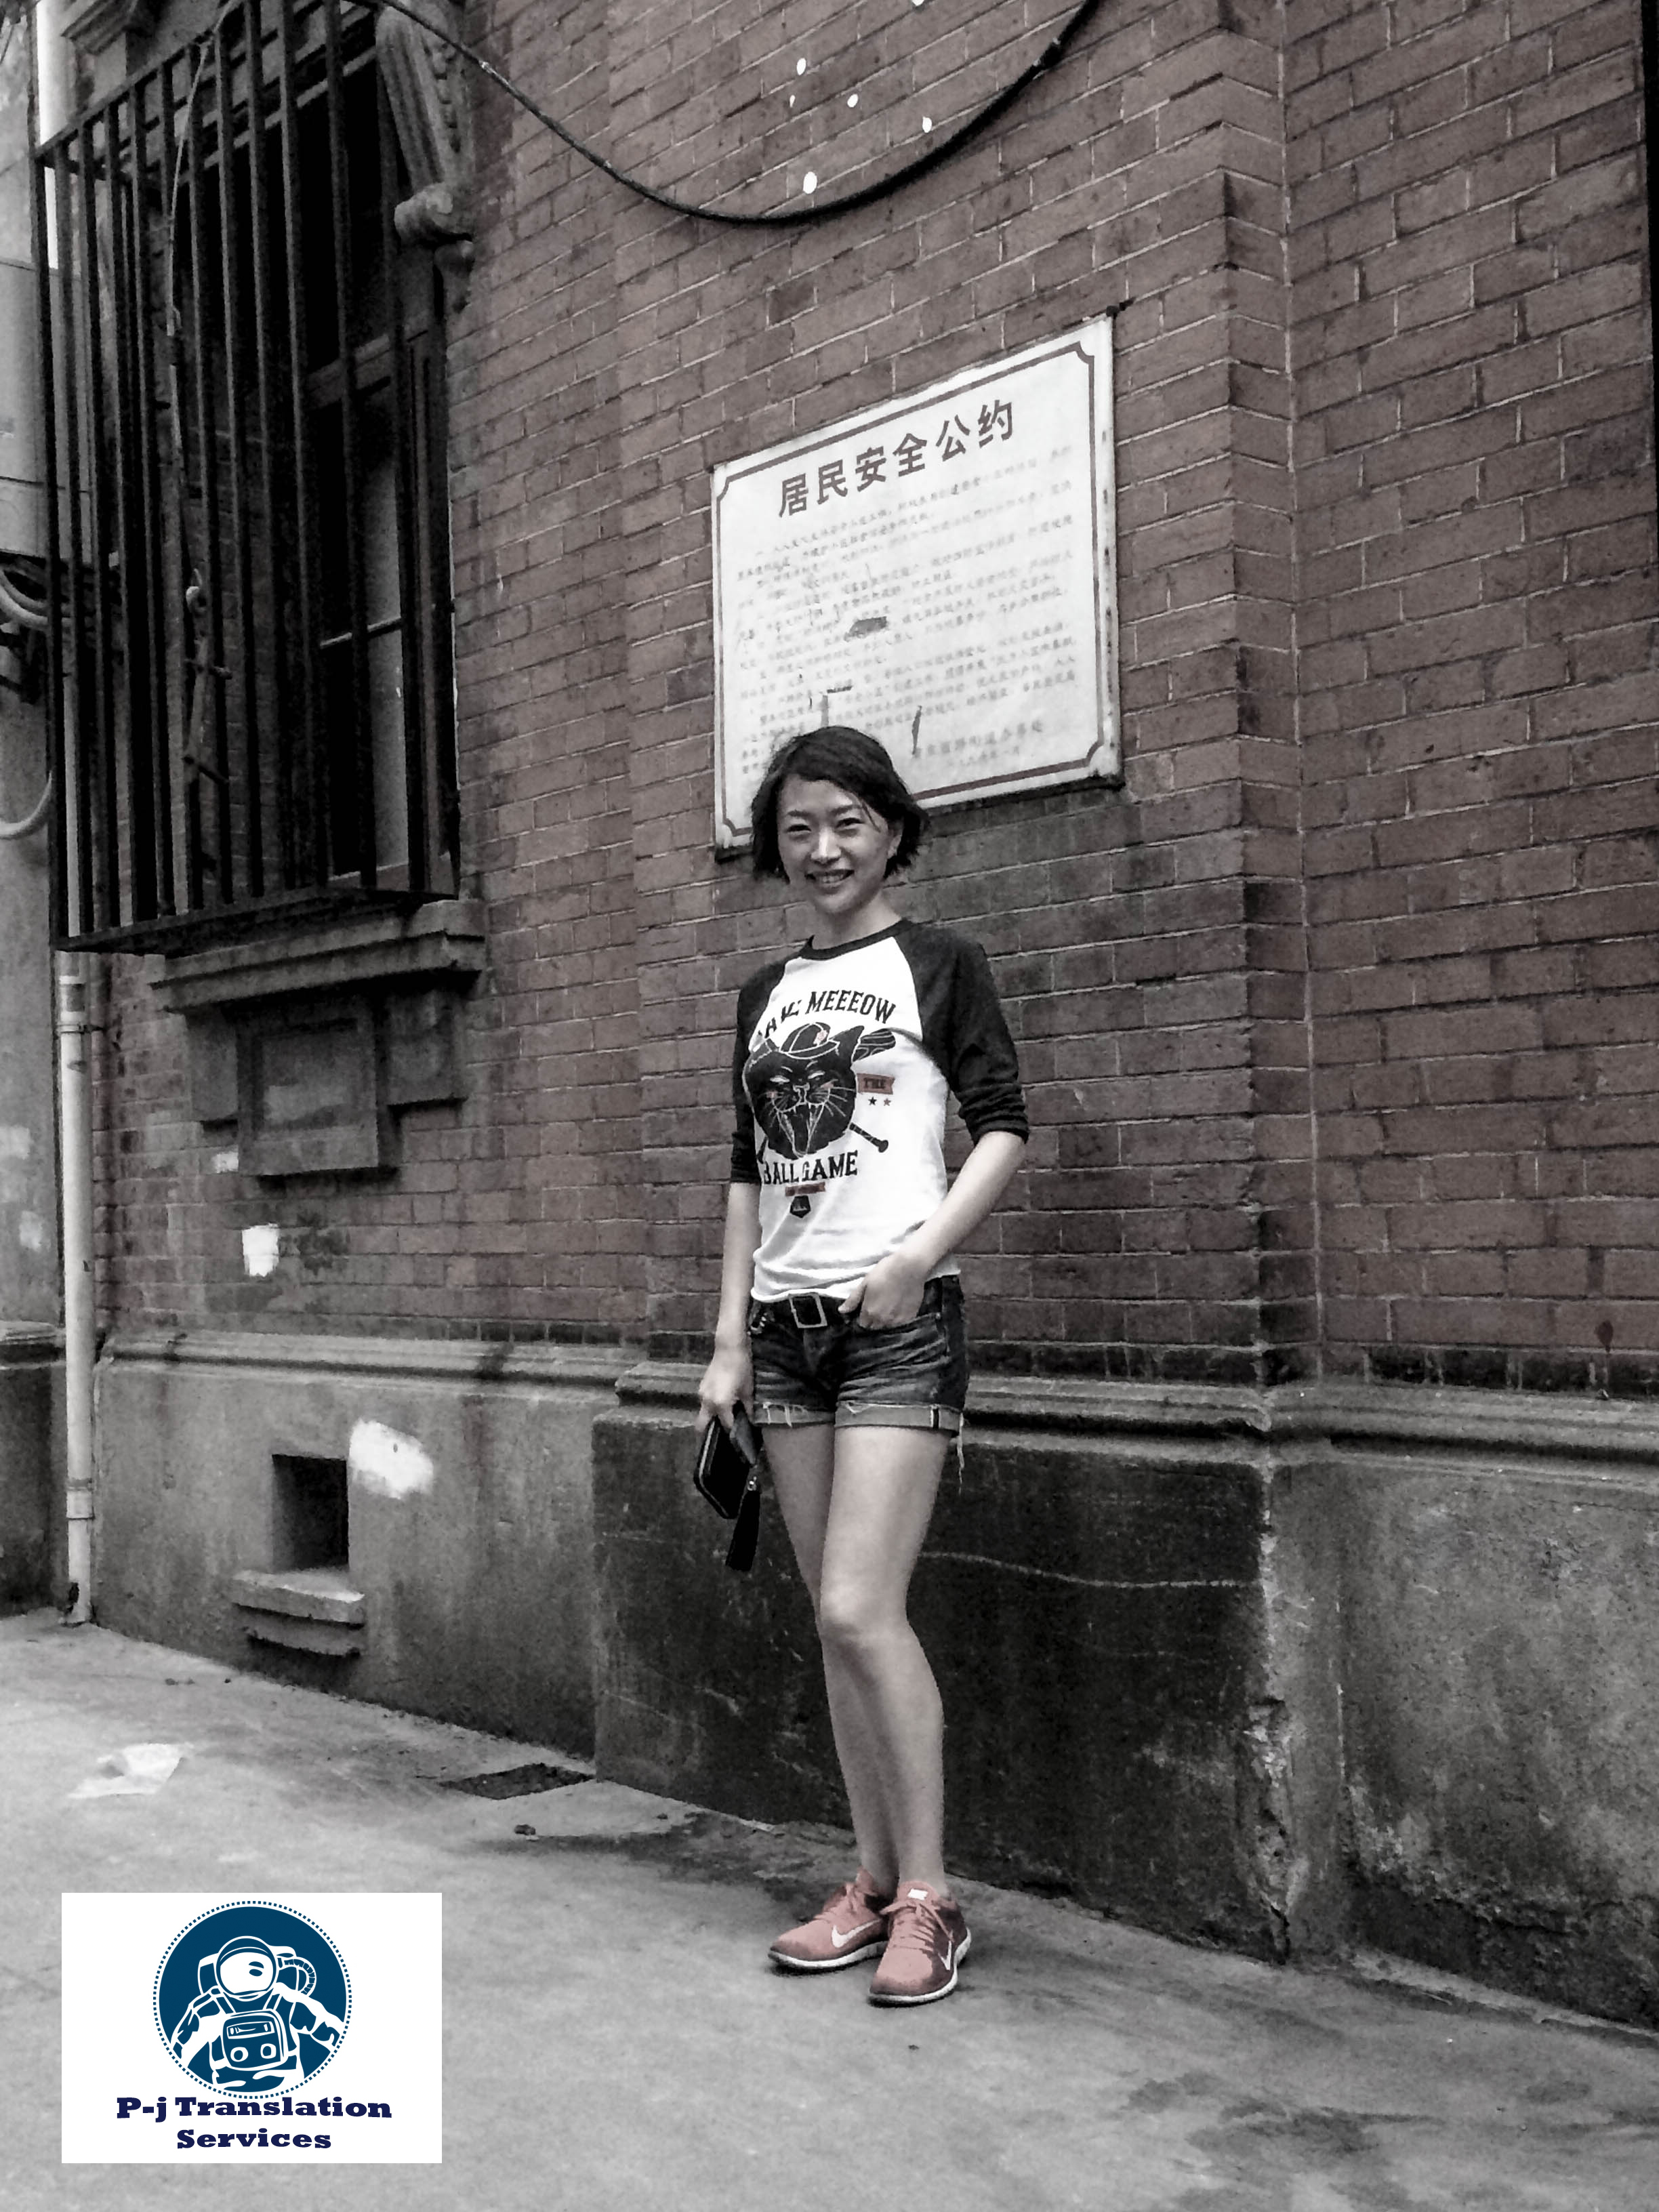 Ms. Yvonne Pang, co-founder of Doko.com, who was brave enough to be our very inspired guide.